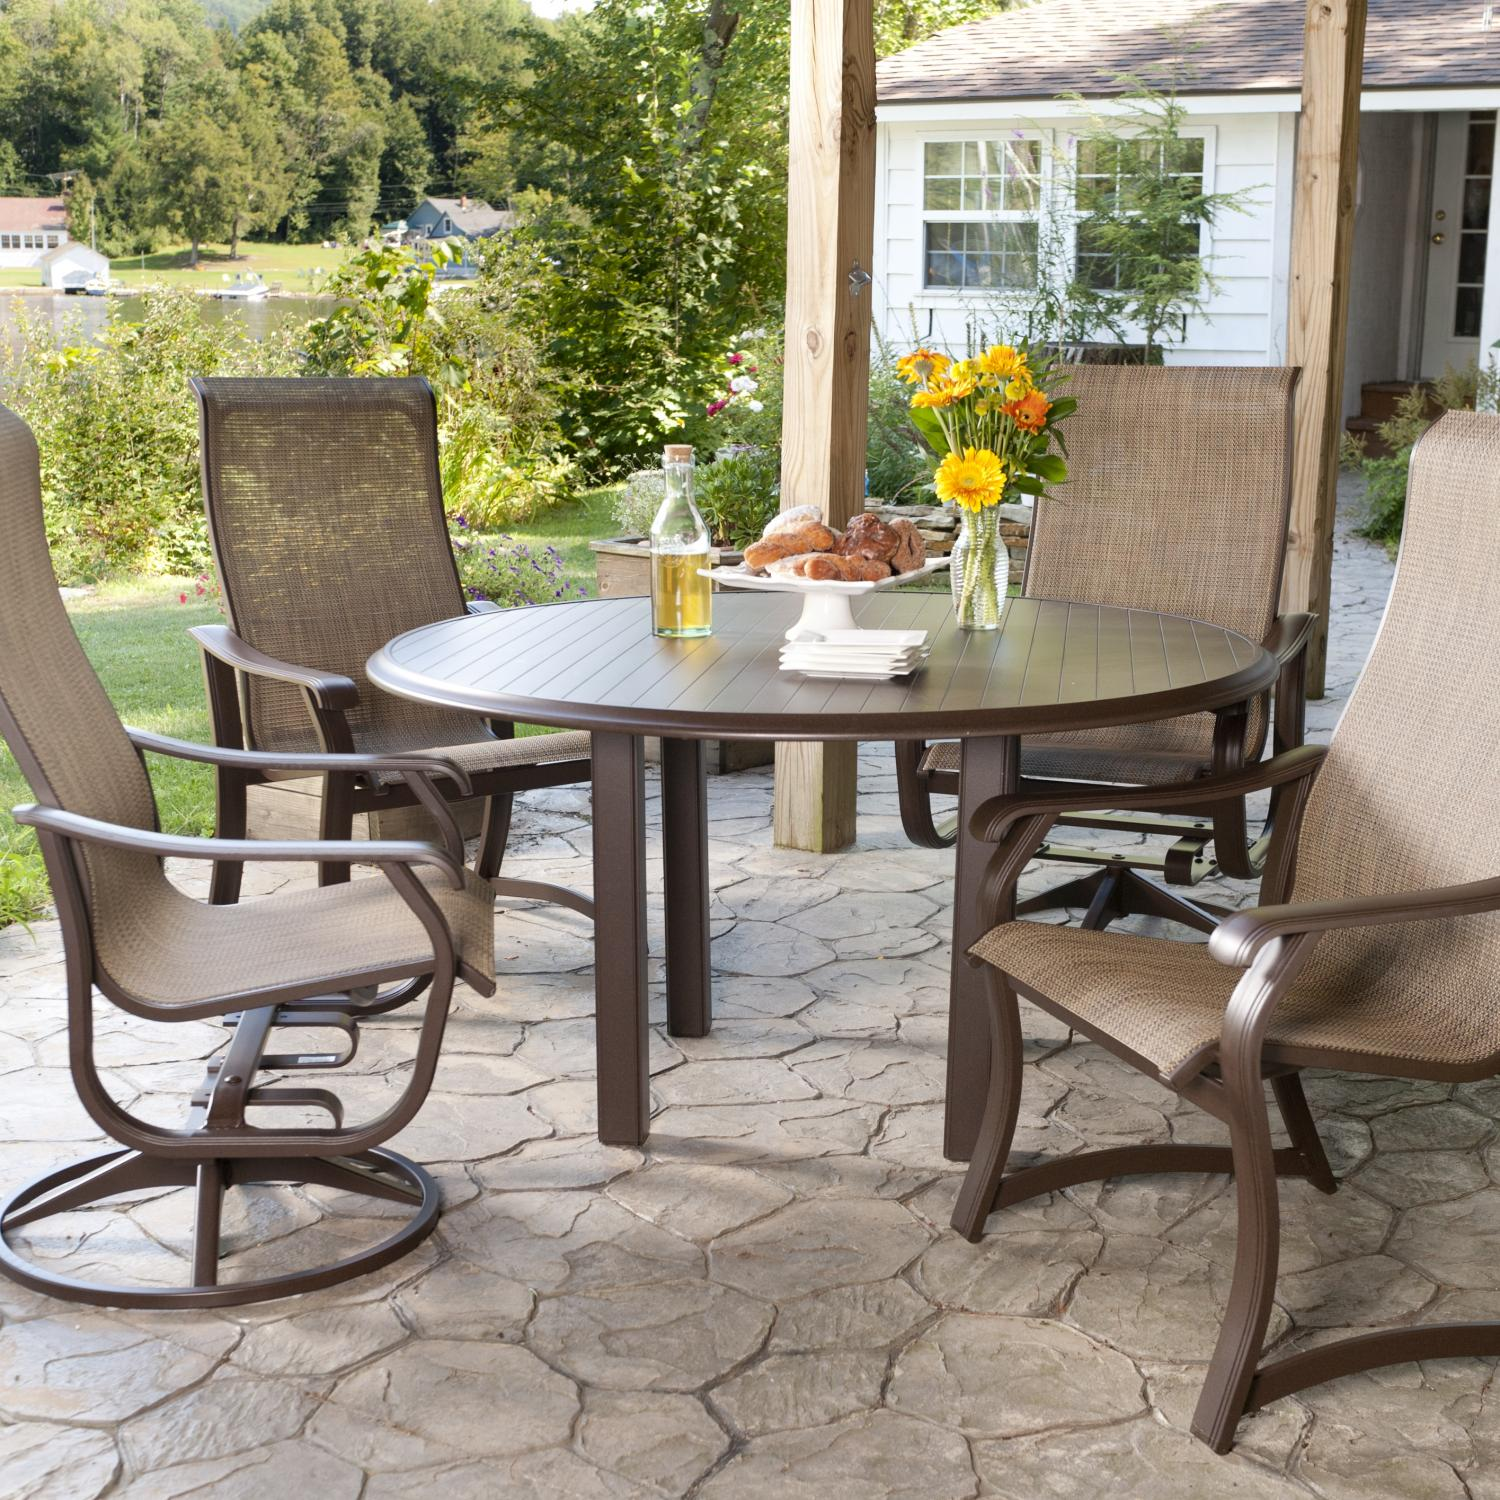 Dining Sets Sale: Patio Dining Sets On Sale